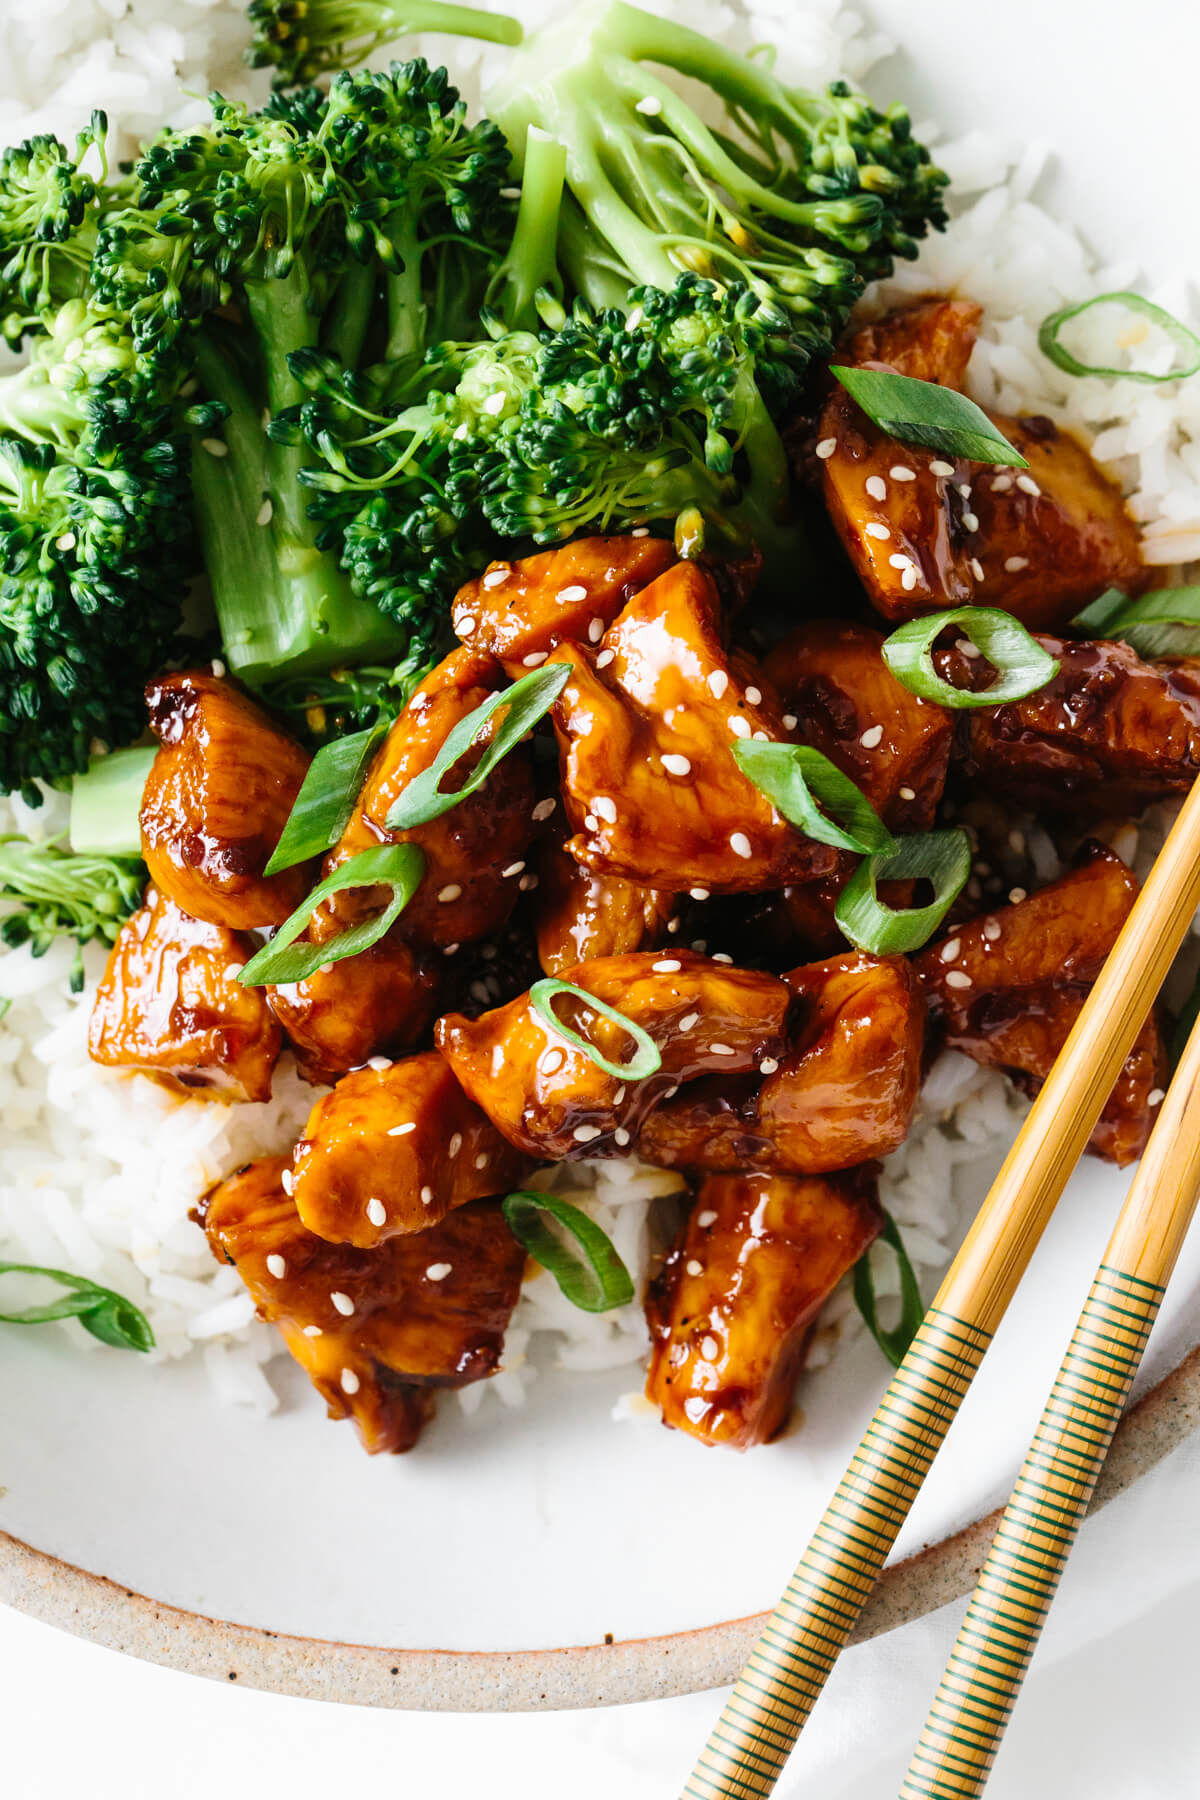 Recipe: Perfect Easy Homemade Chicken Teriyaki (Gluten free)